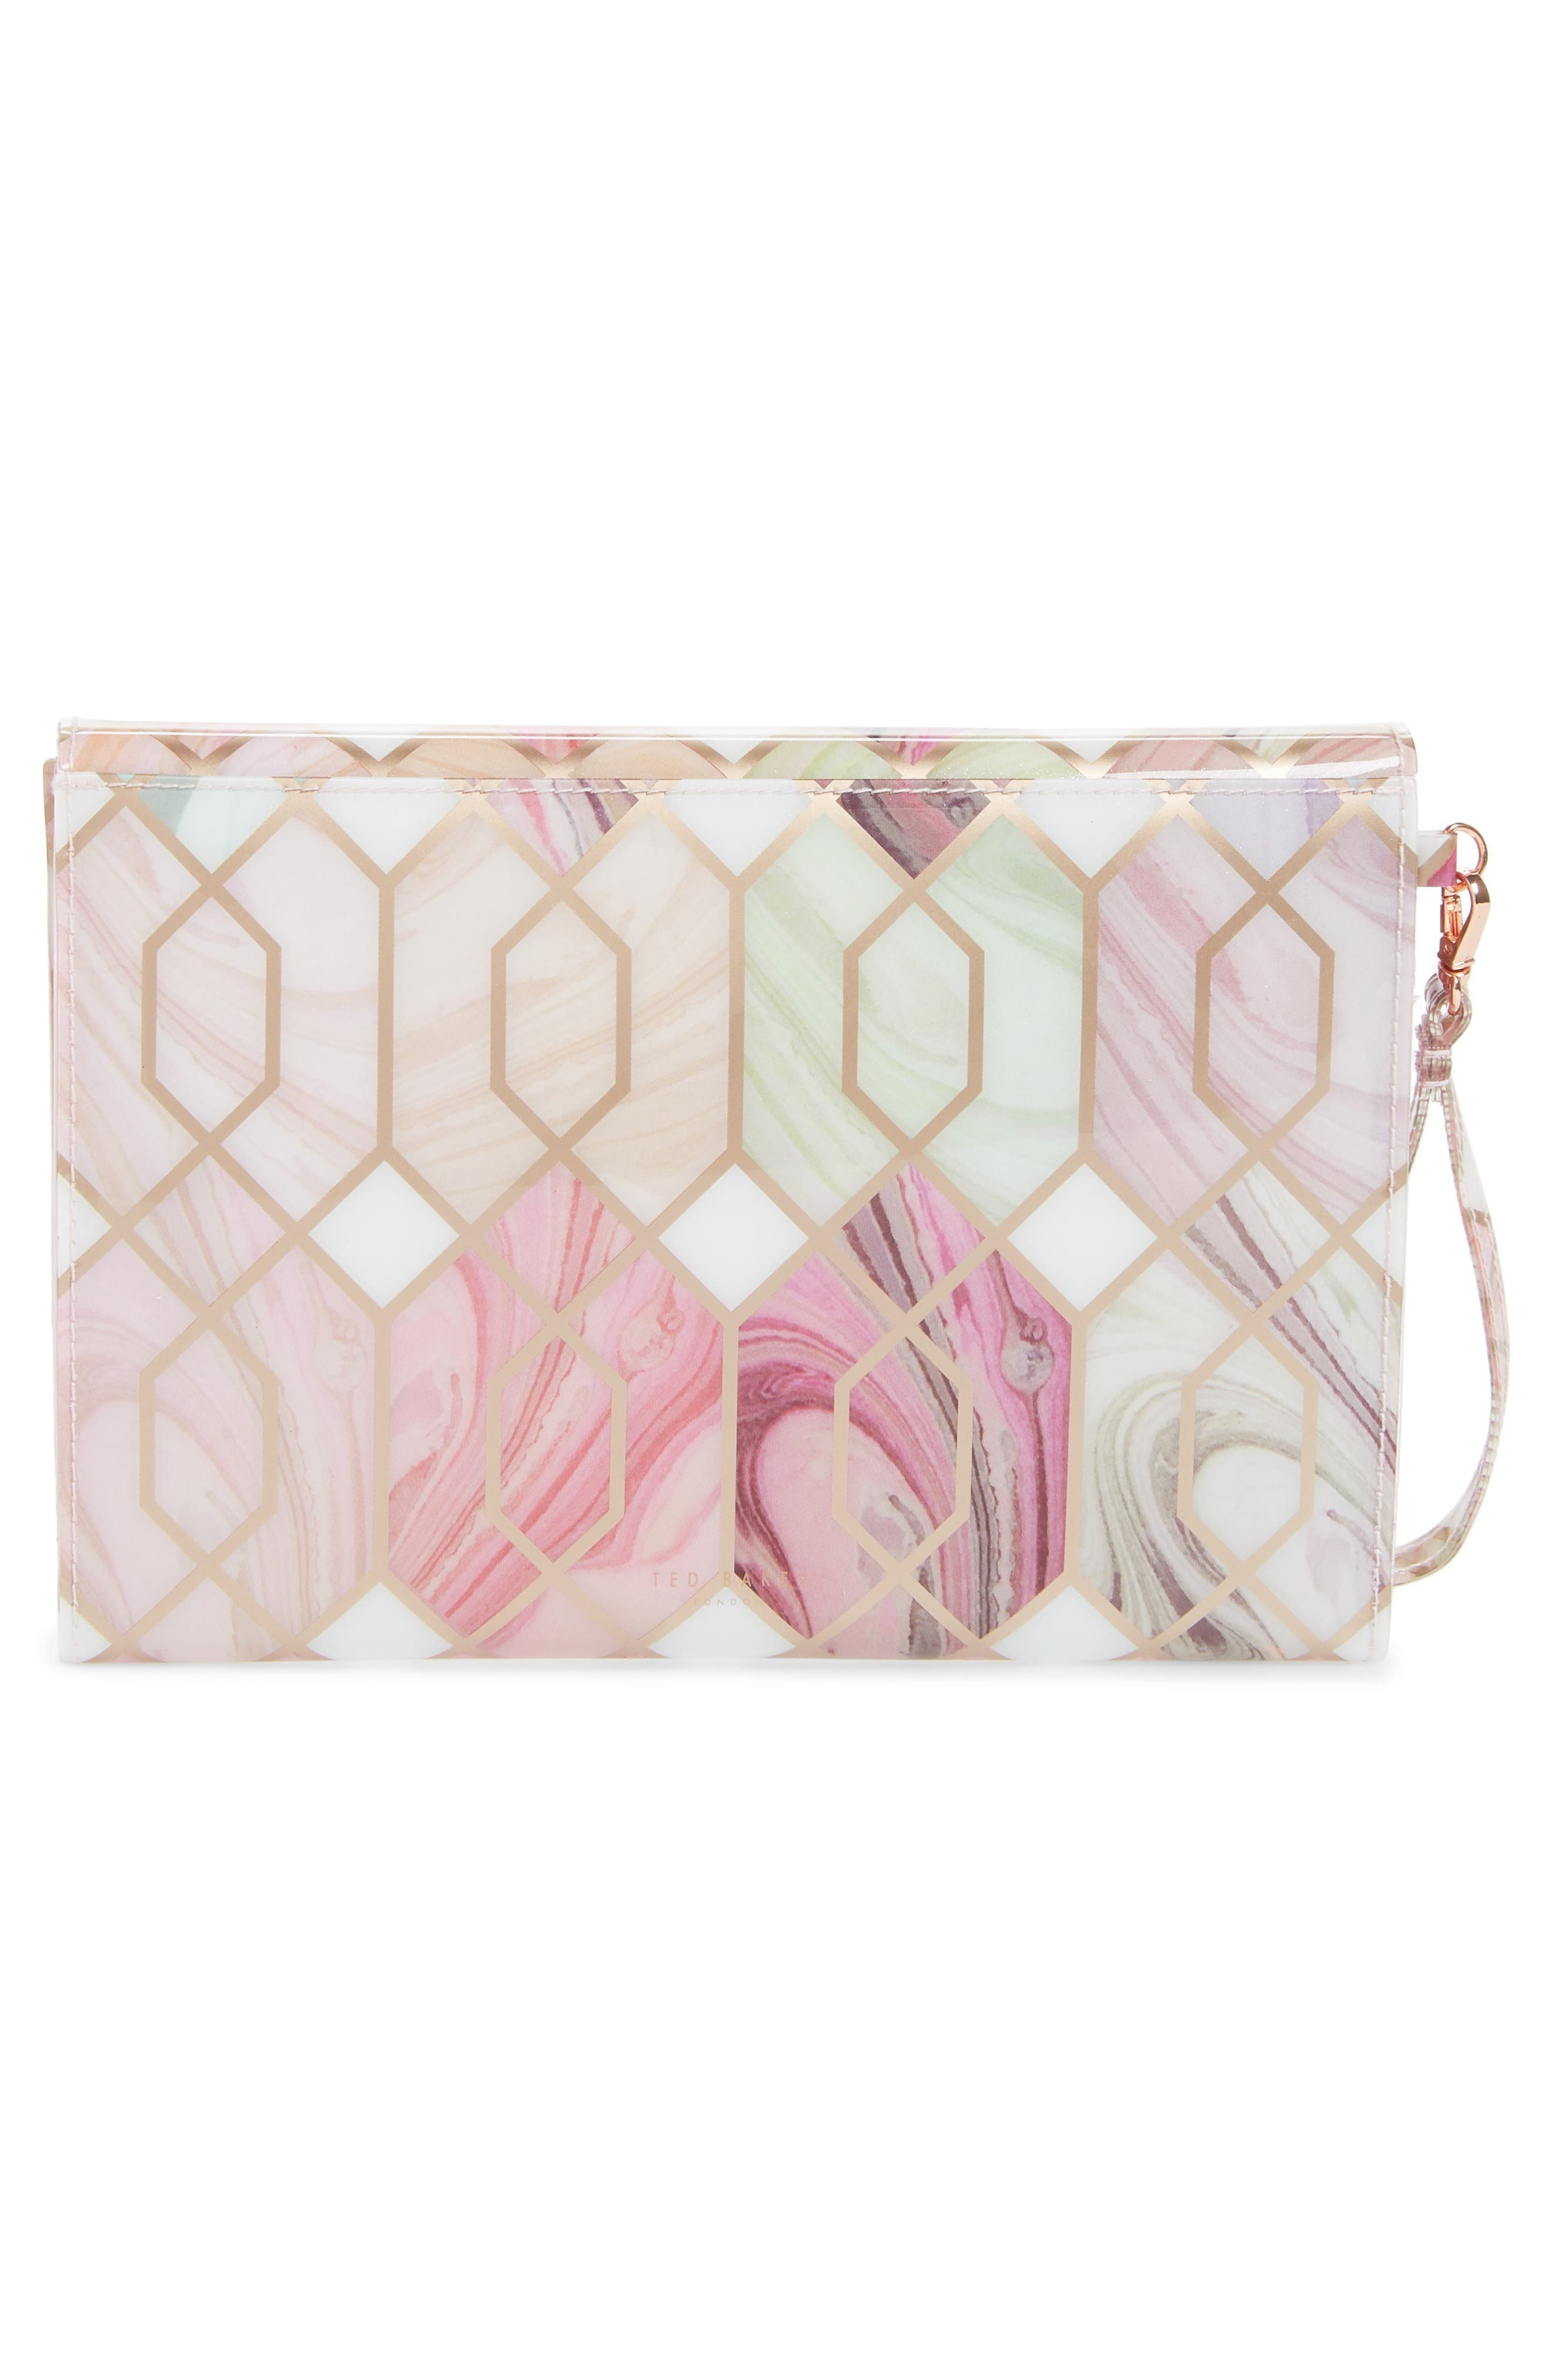 Sea of Clouds Envelope Clutch,                             Alternate thumbnail 3, color,                             White